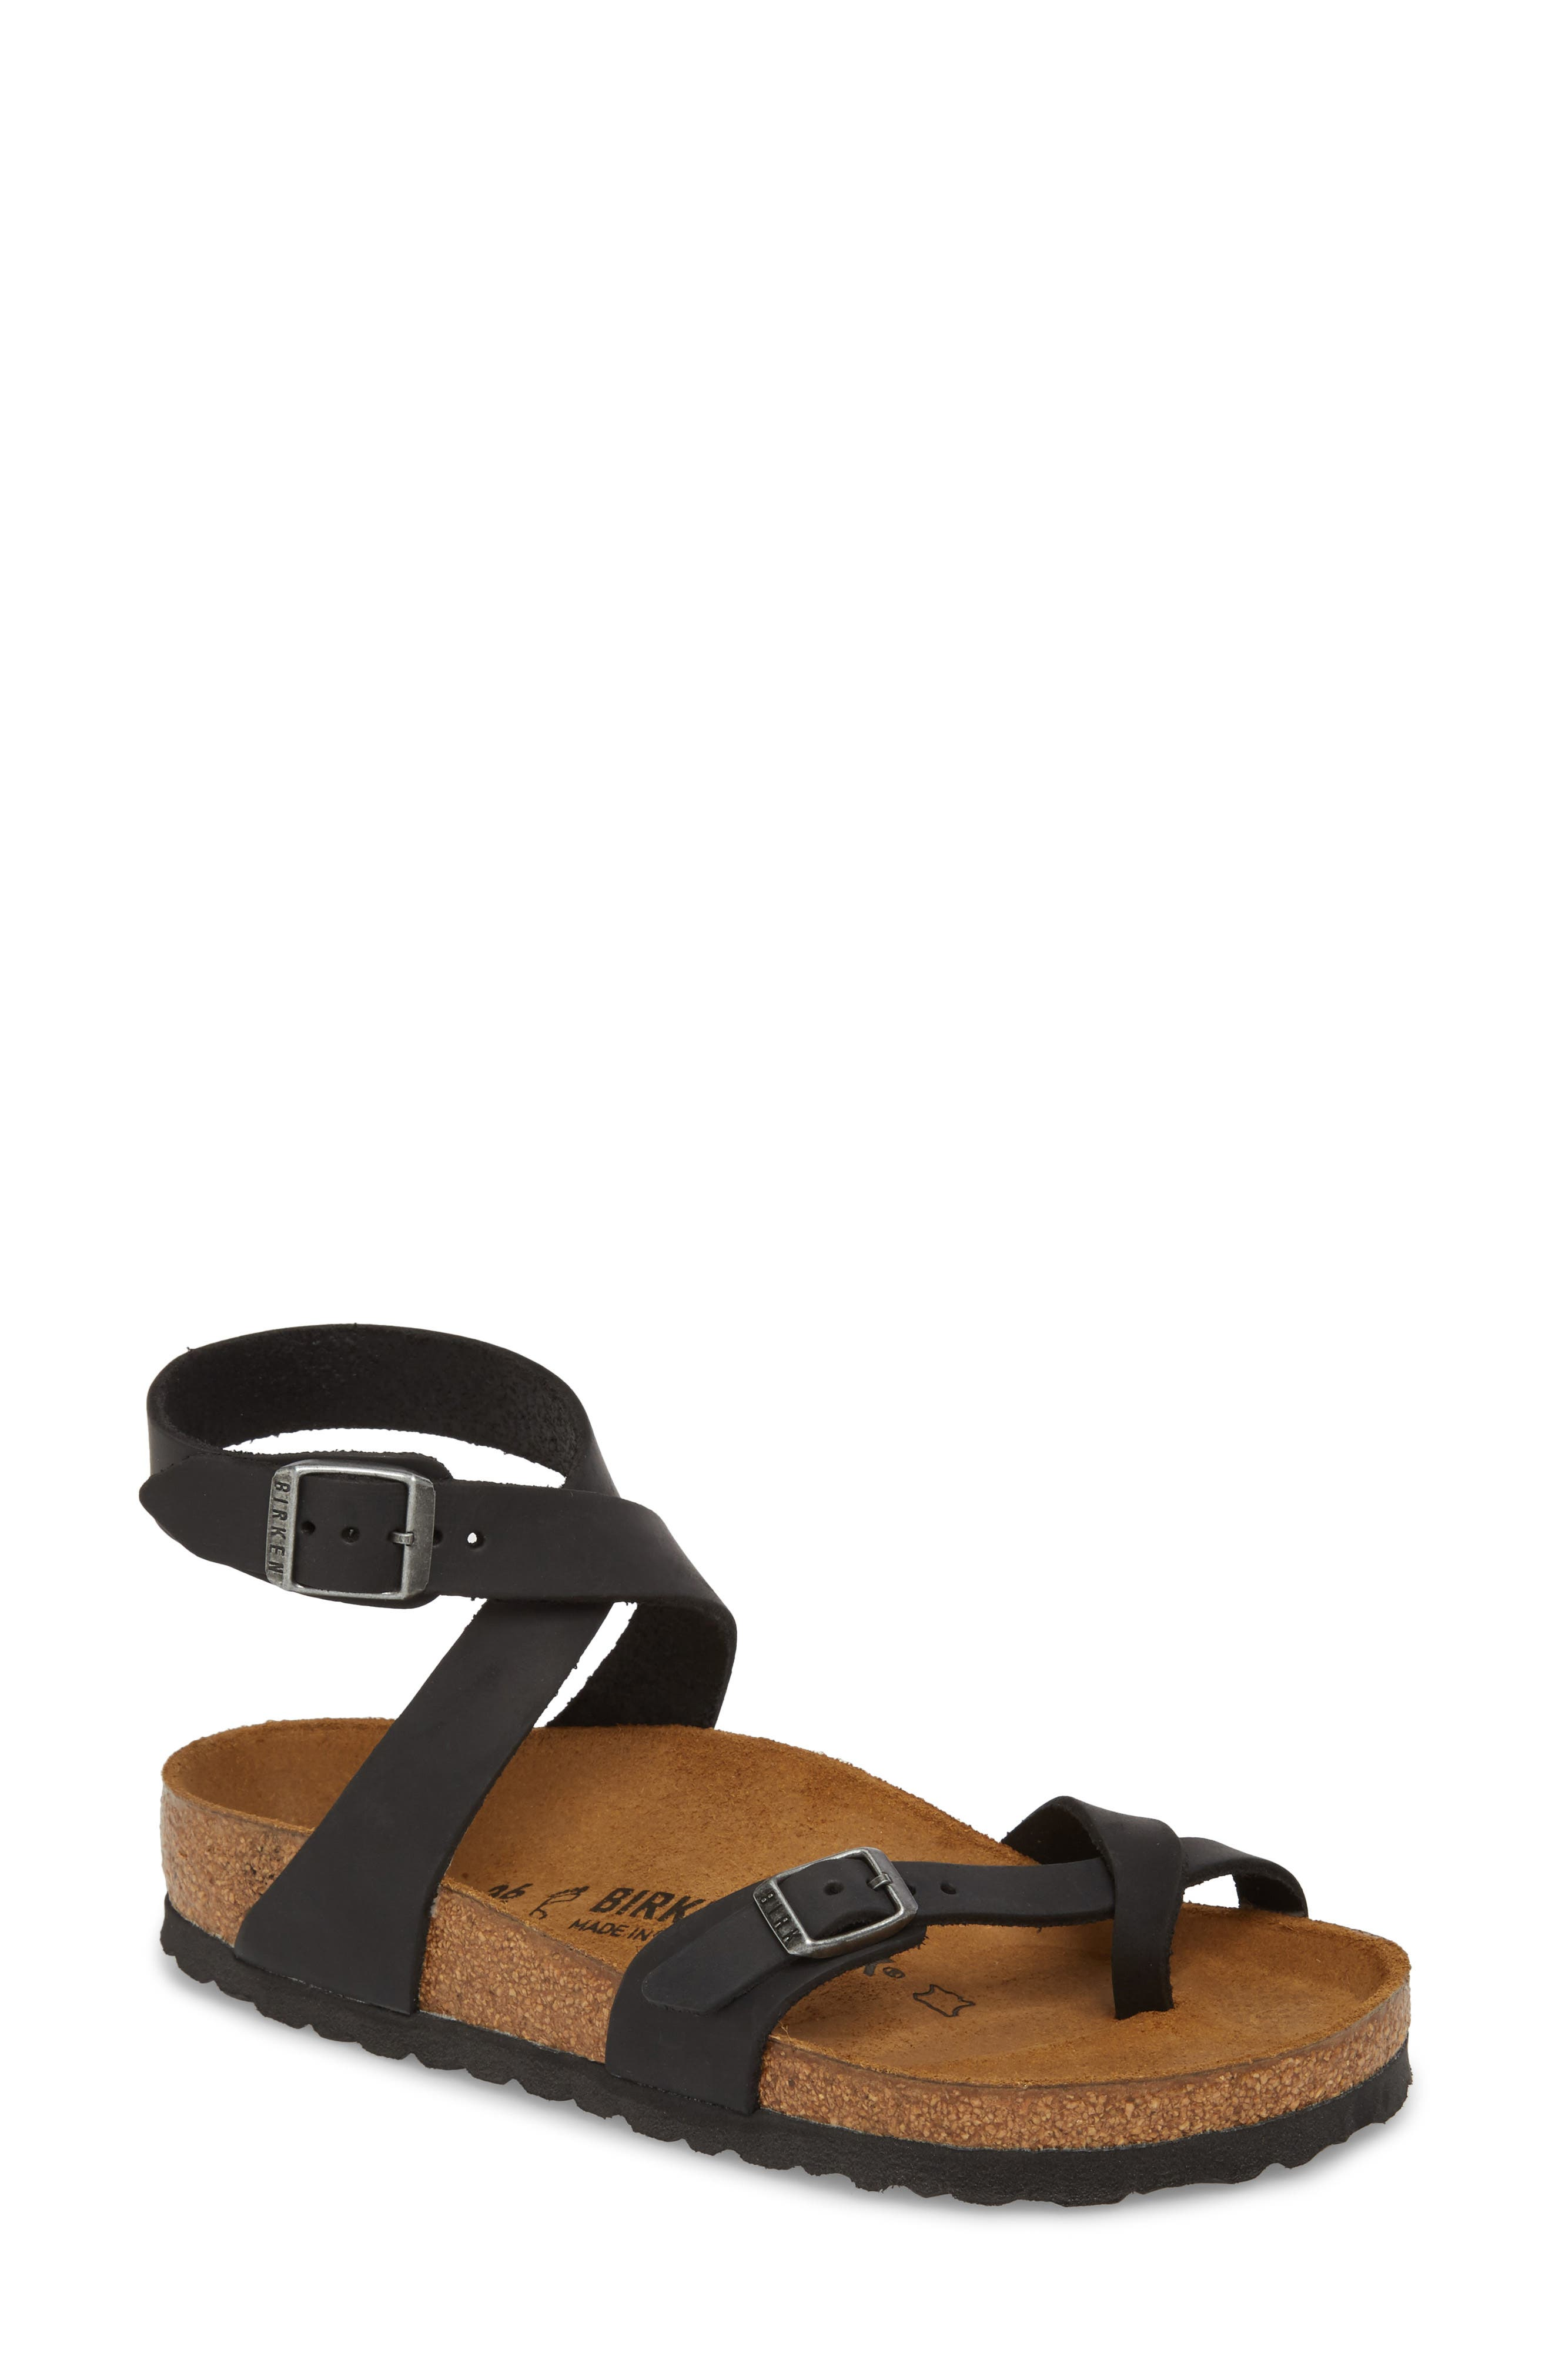 'Yara' Sandal,                         Main,                         color, BLACK OILED LEATHER